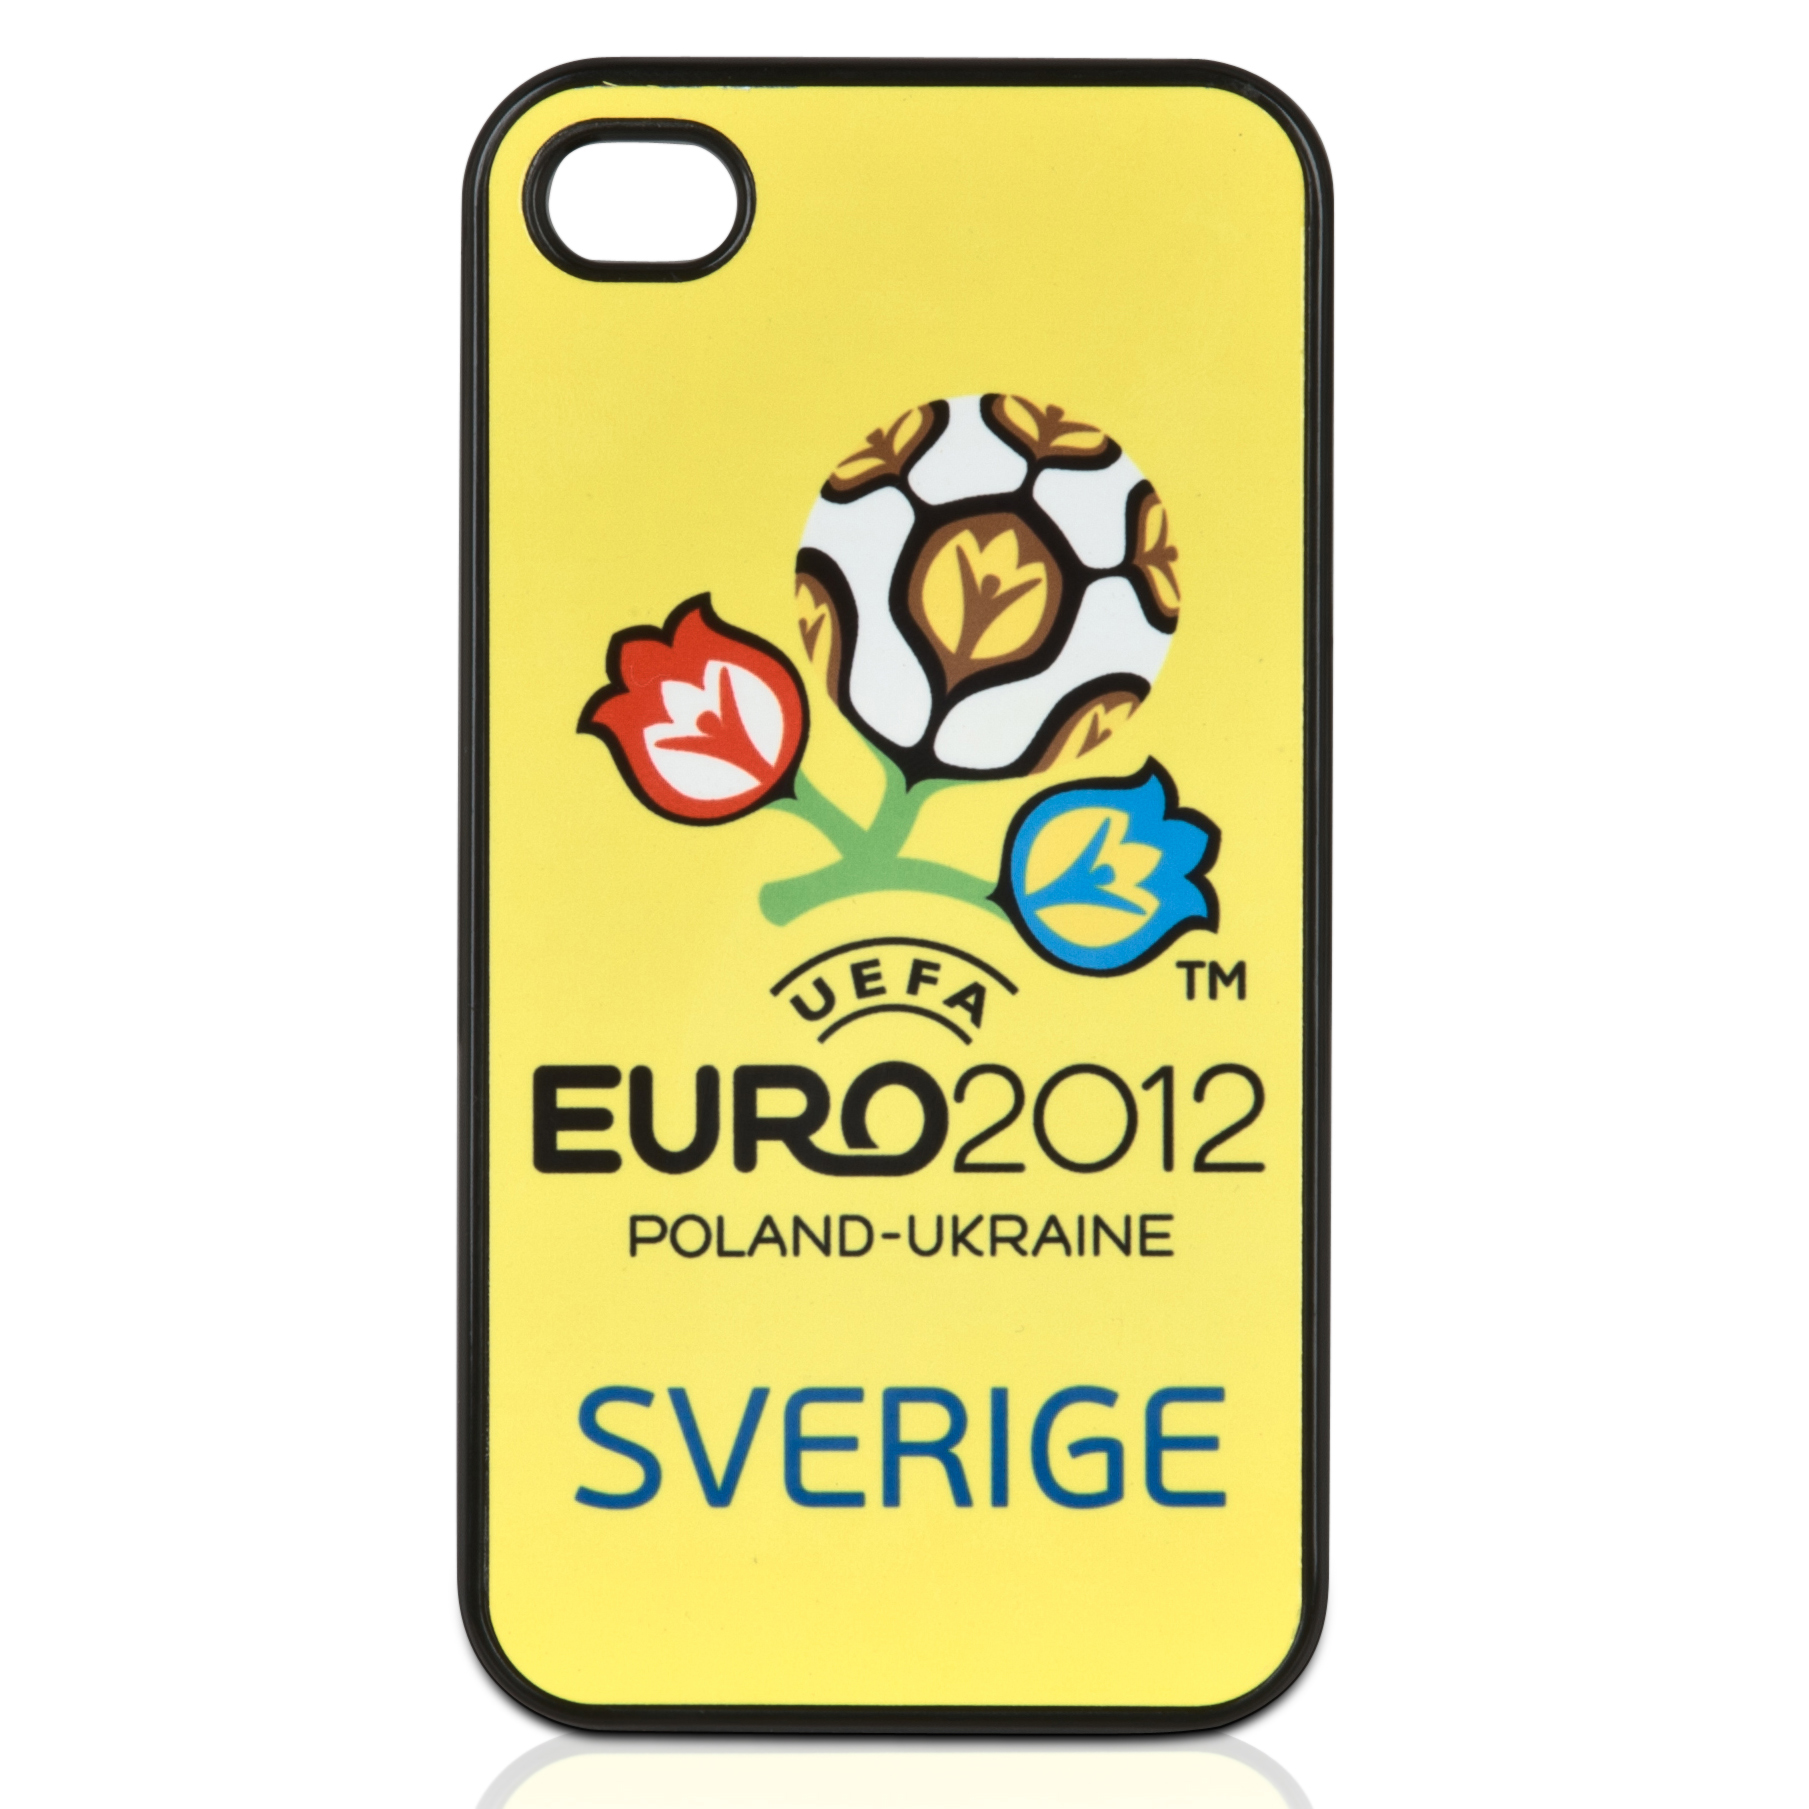 EURO 2012 Country Iphone 4 Cover - Sweden